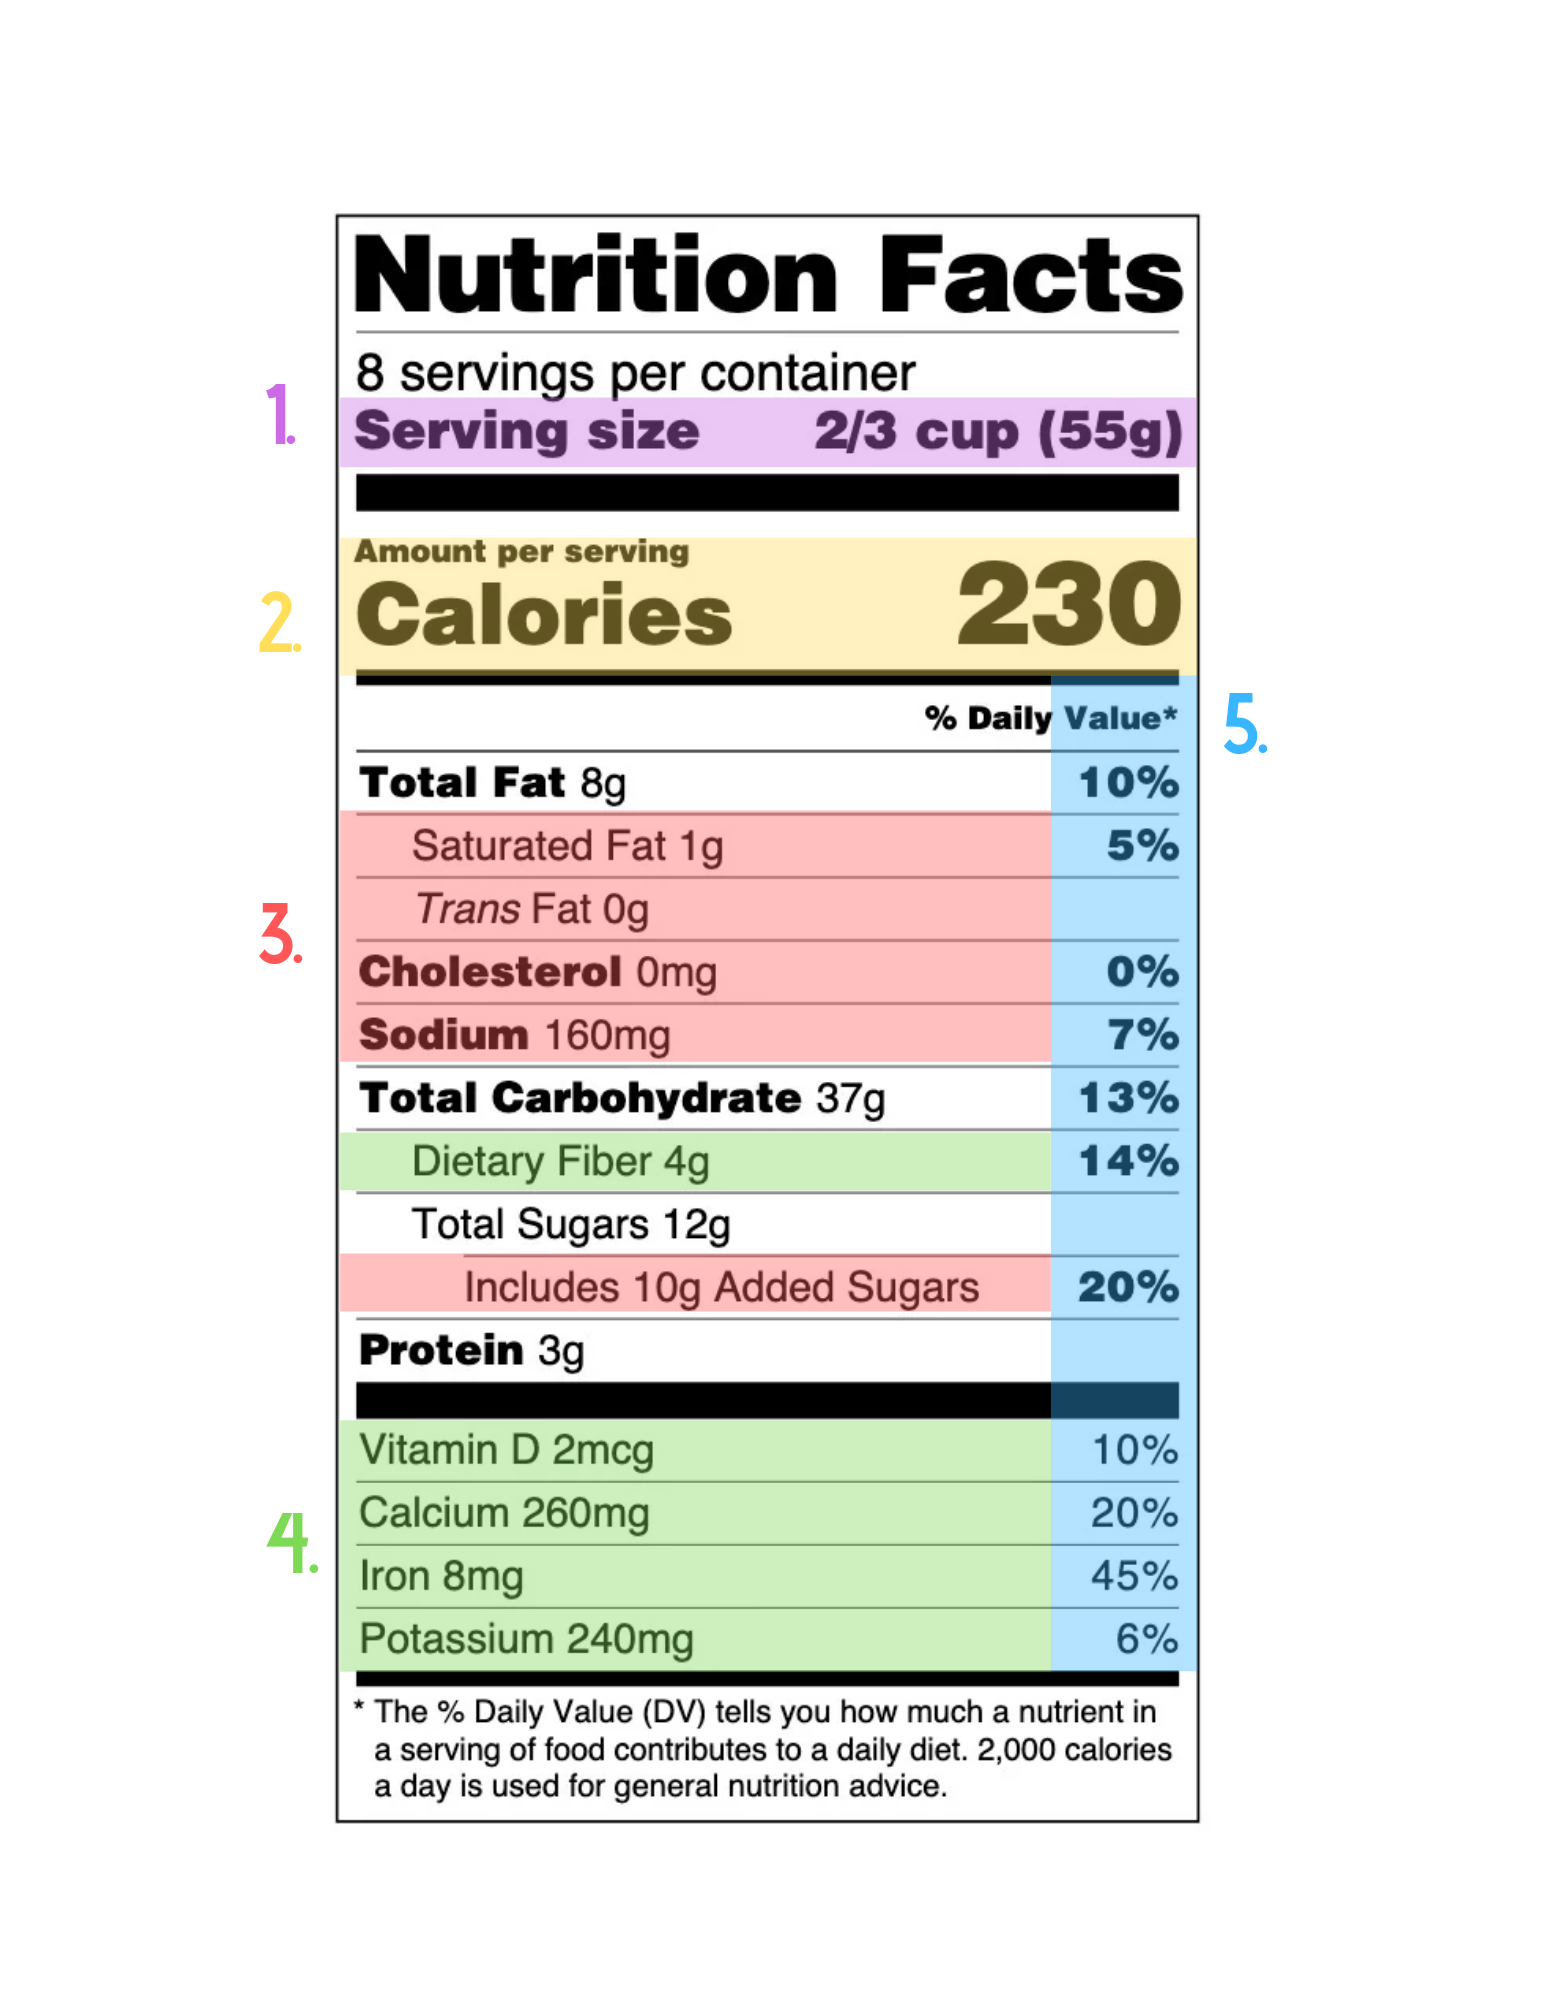 Nutrition Facts Label Diagram